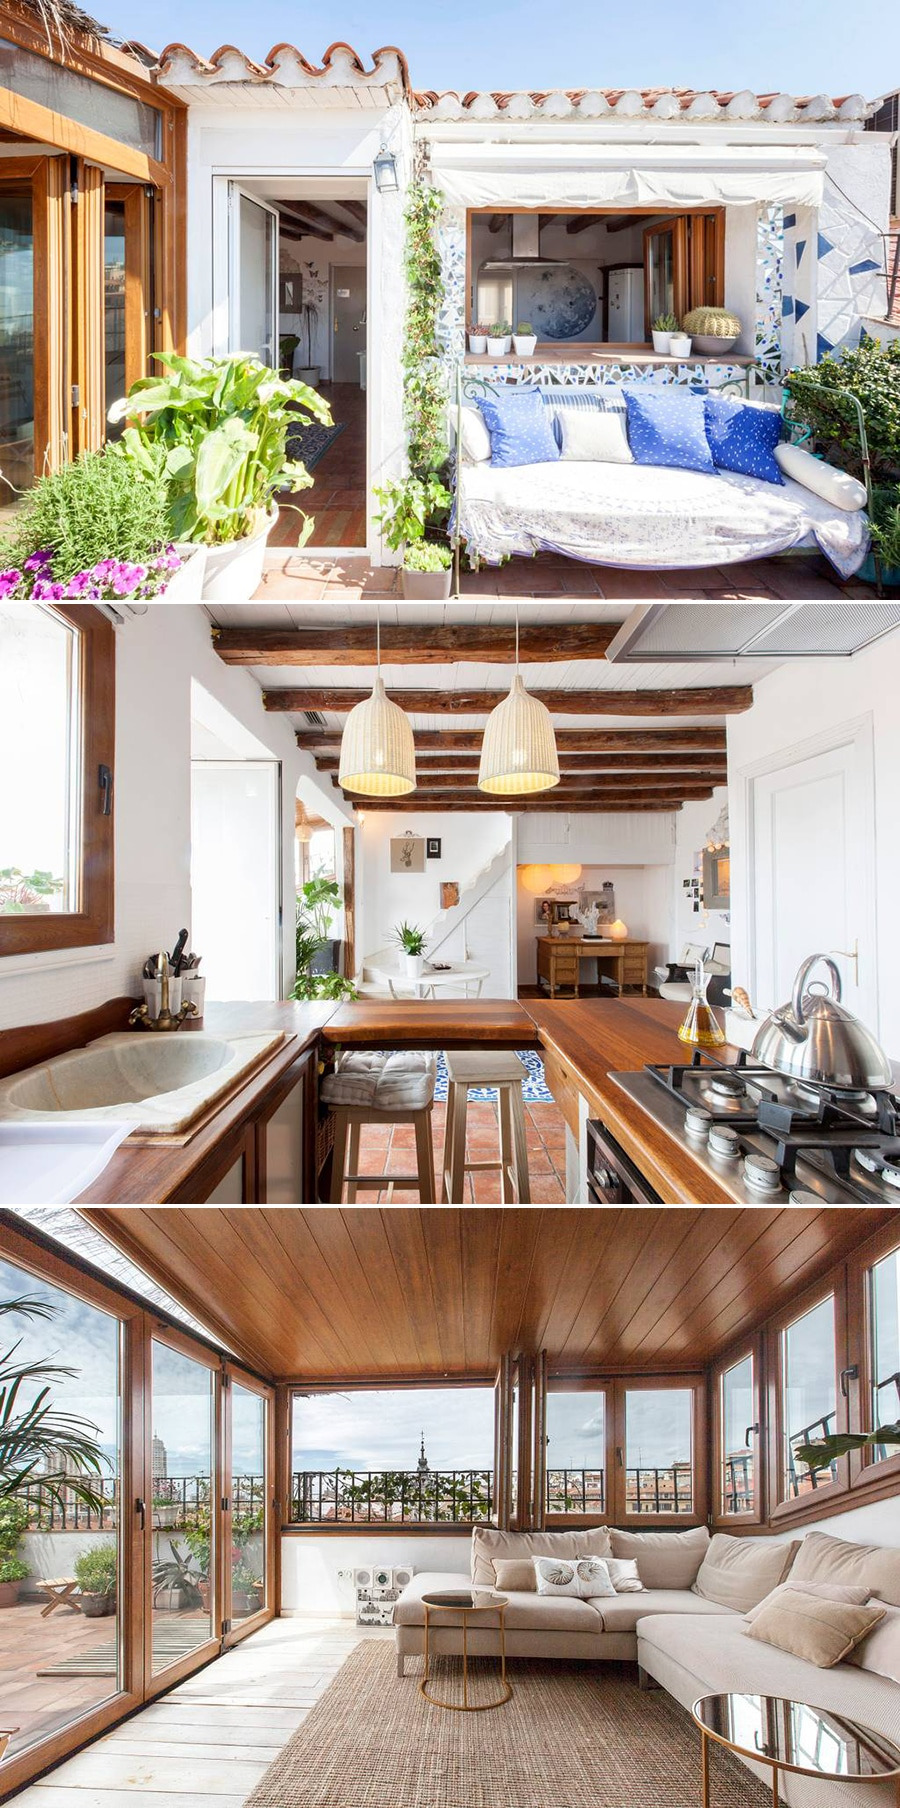 The Most Beautiful Houses In the World Interior Lovely the Most Beautiful and Unique Airbnbs to Add to Your 2018